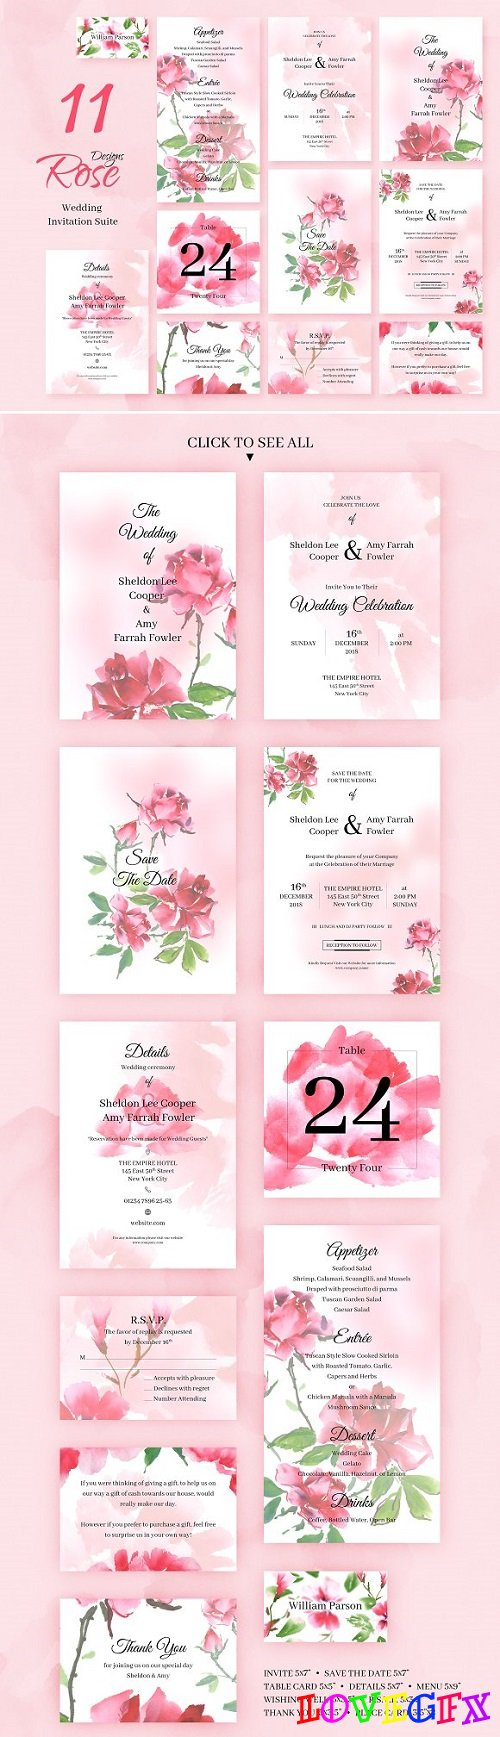 Rose Wedding Invitation Package 2219020